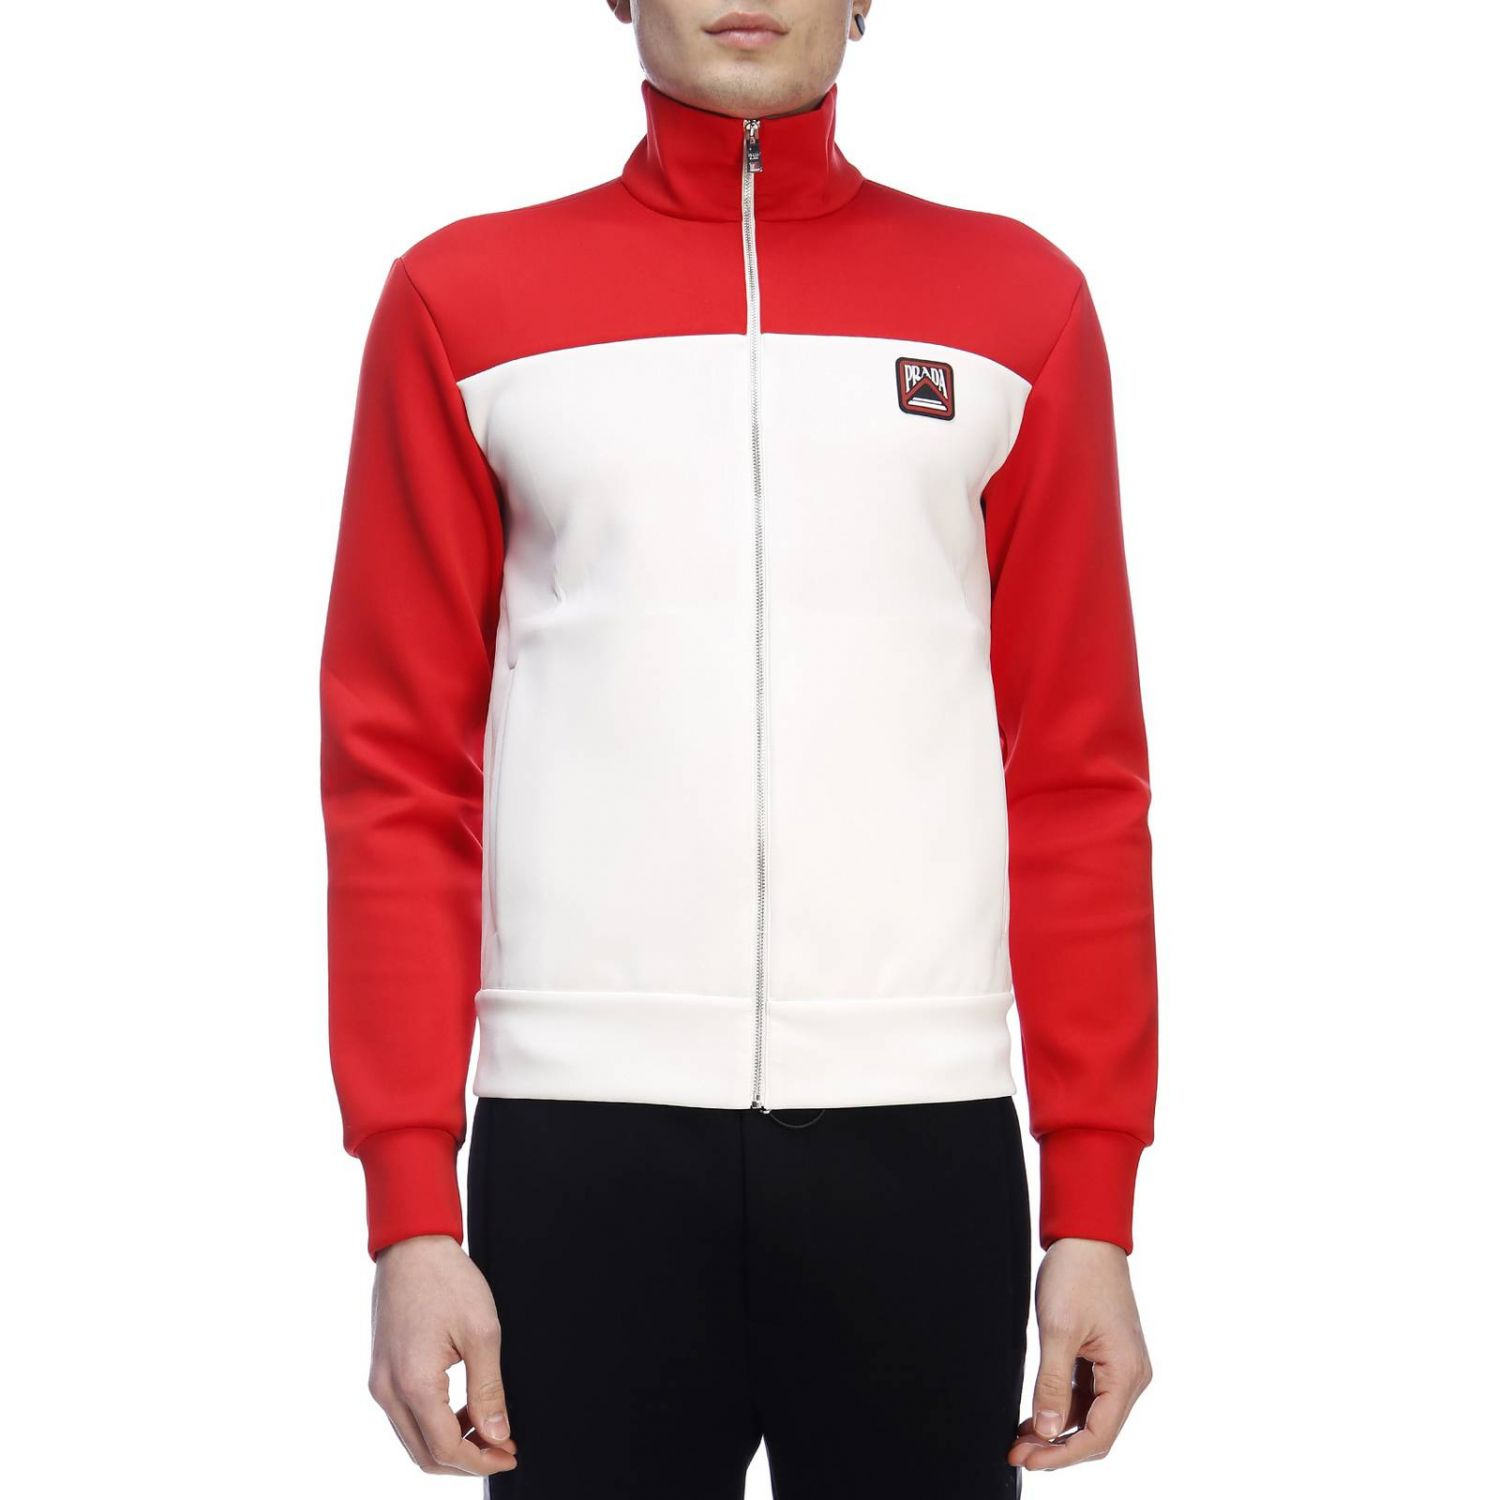 Jumper men Prada red 1